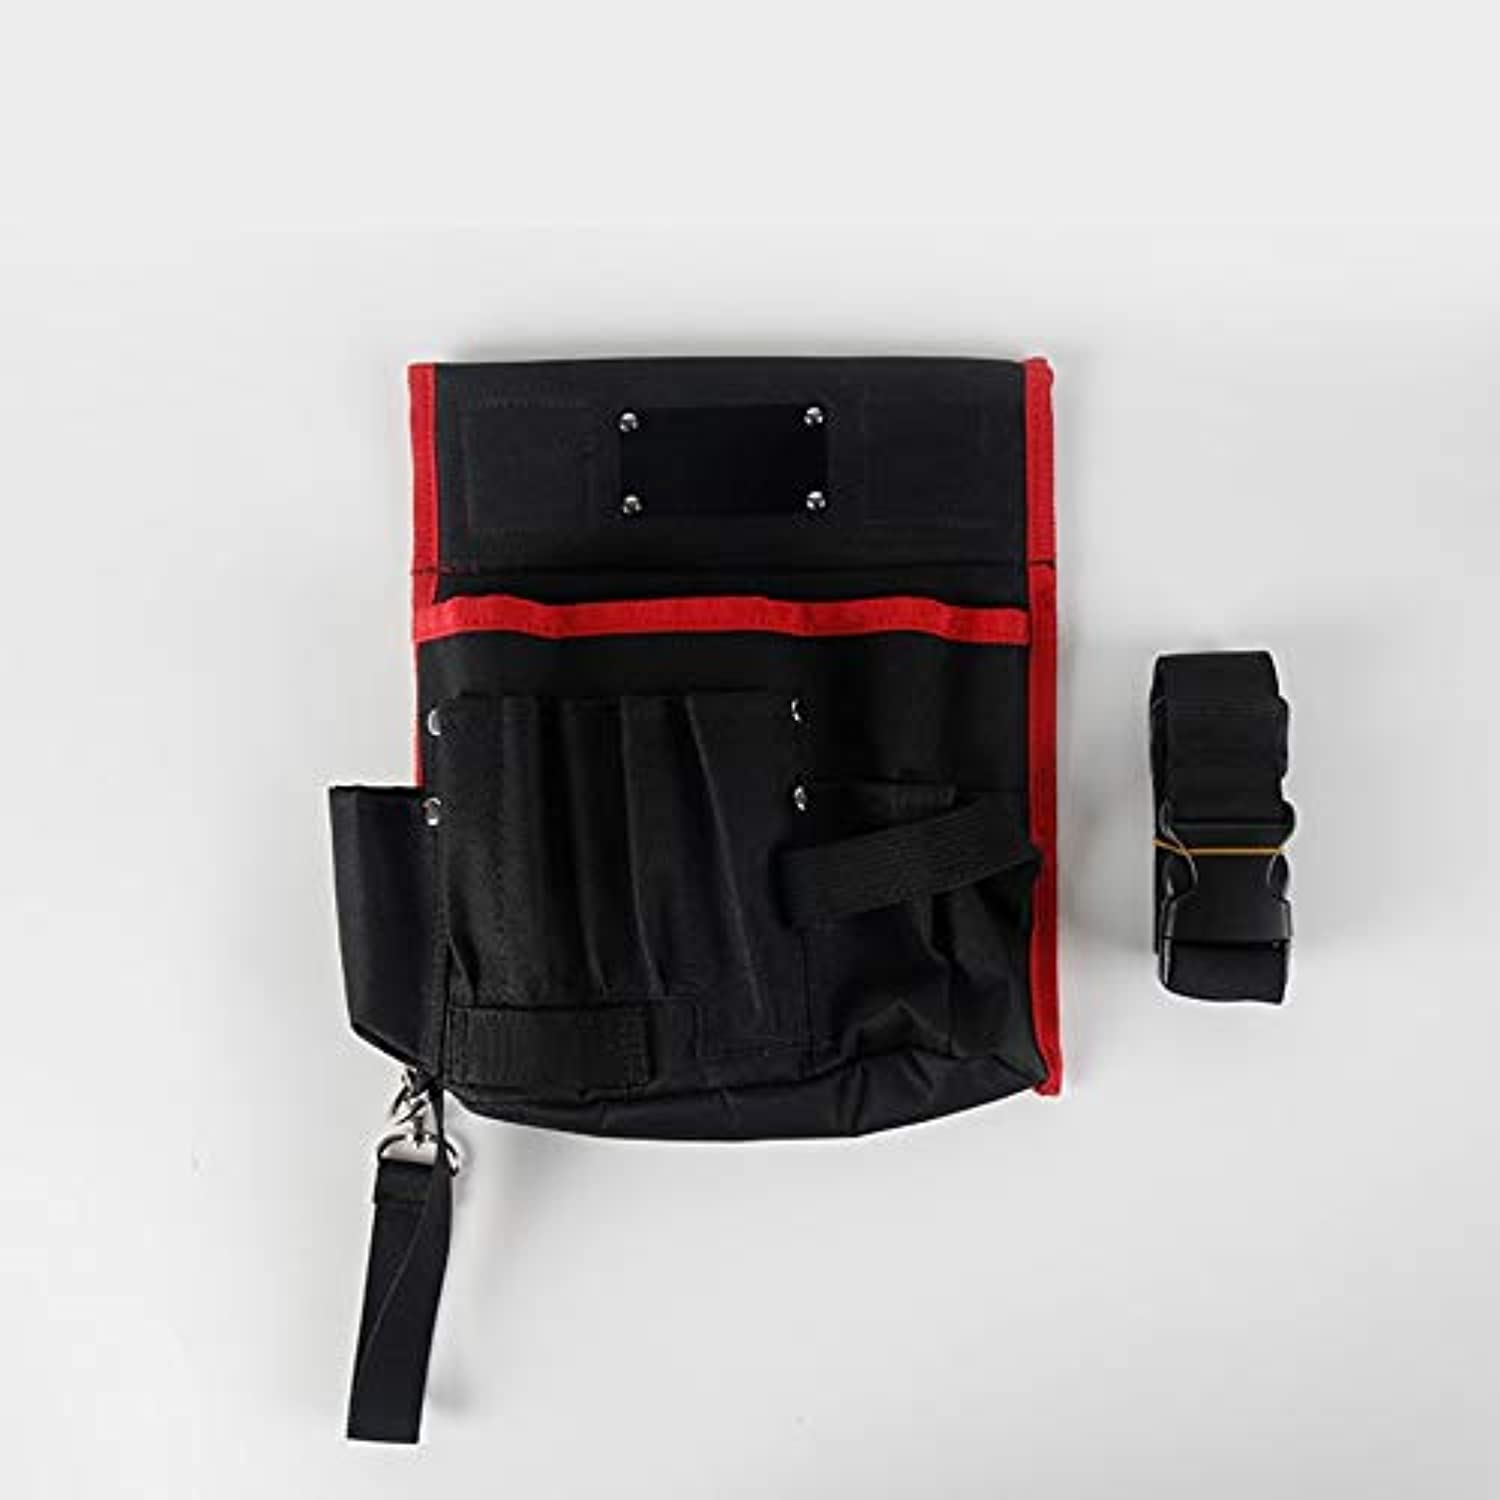 High Quality Tool Pouch 600D High Density Waterproof Oxford Car Wrapping Tool Bag Black Pocket Waist Apron MO308